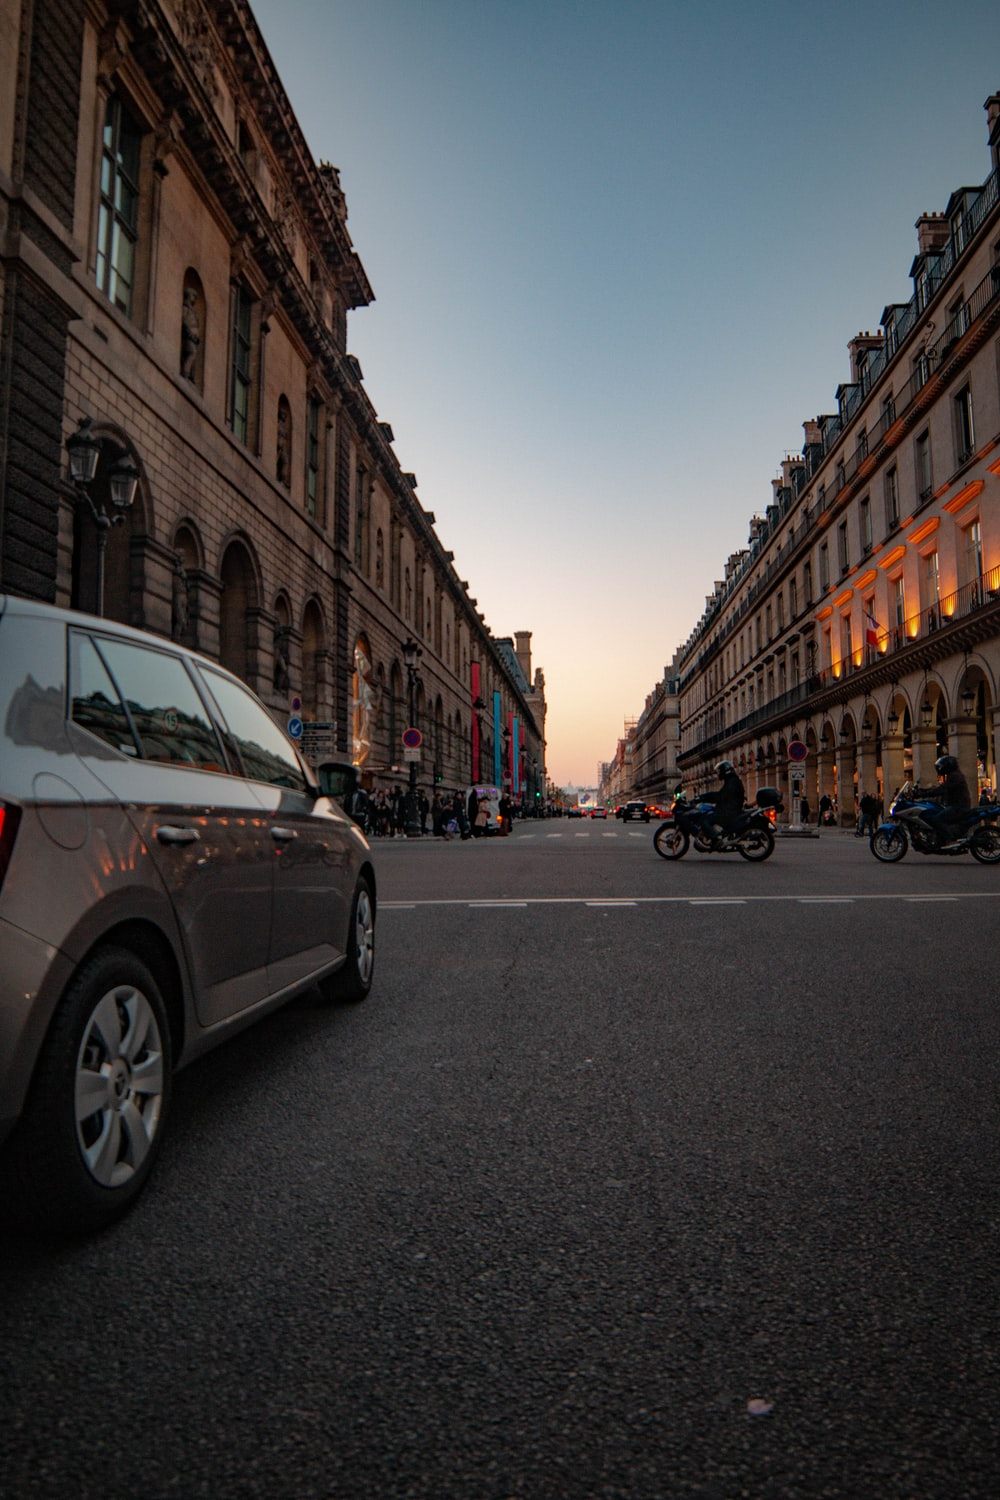 silver vehicle in road during golden hour